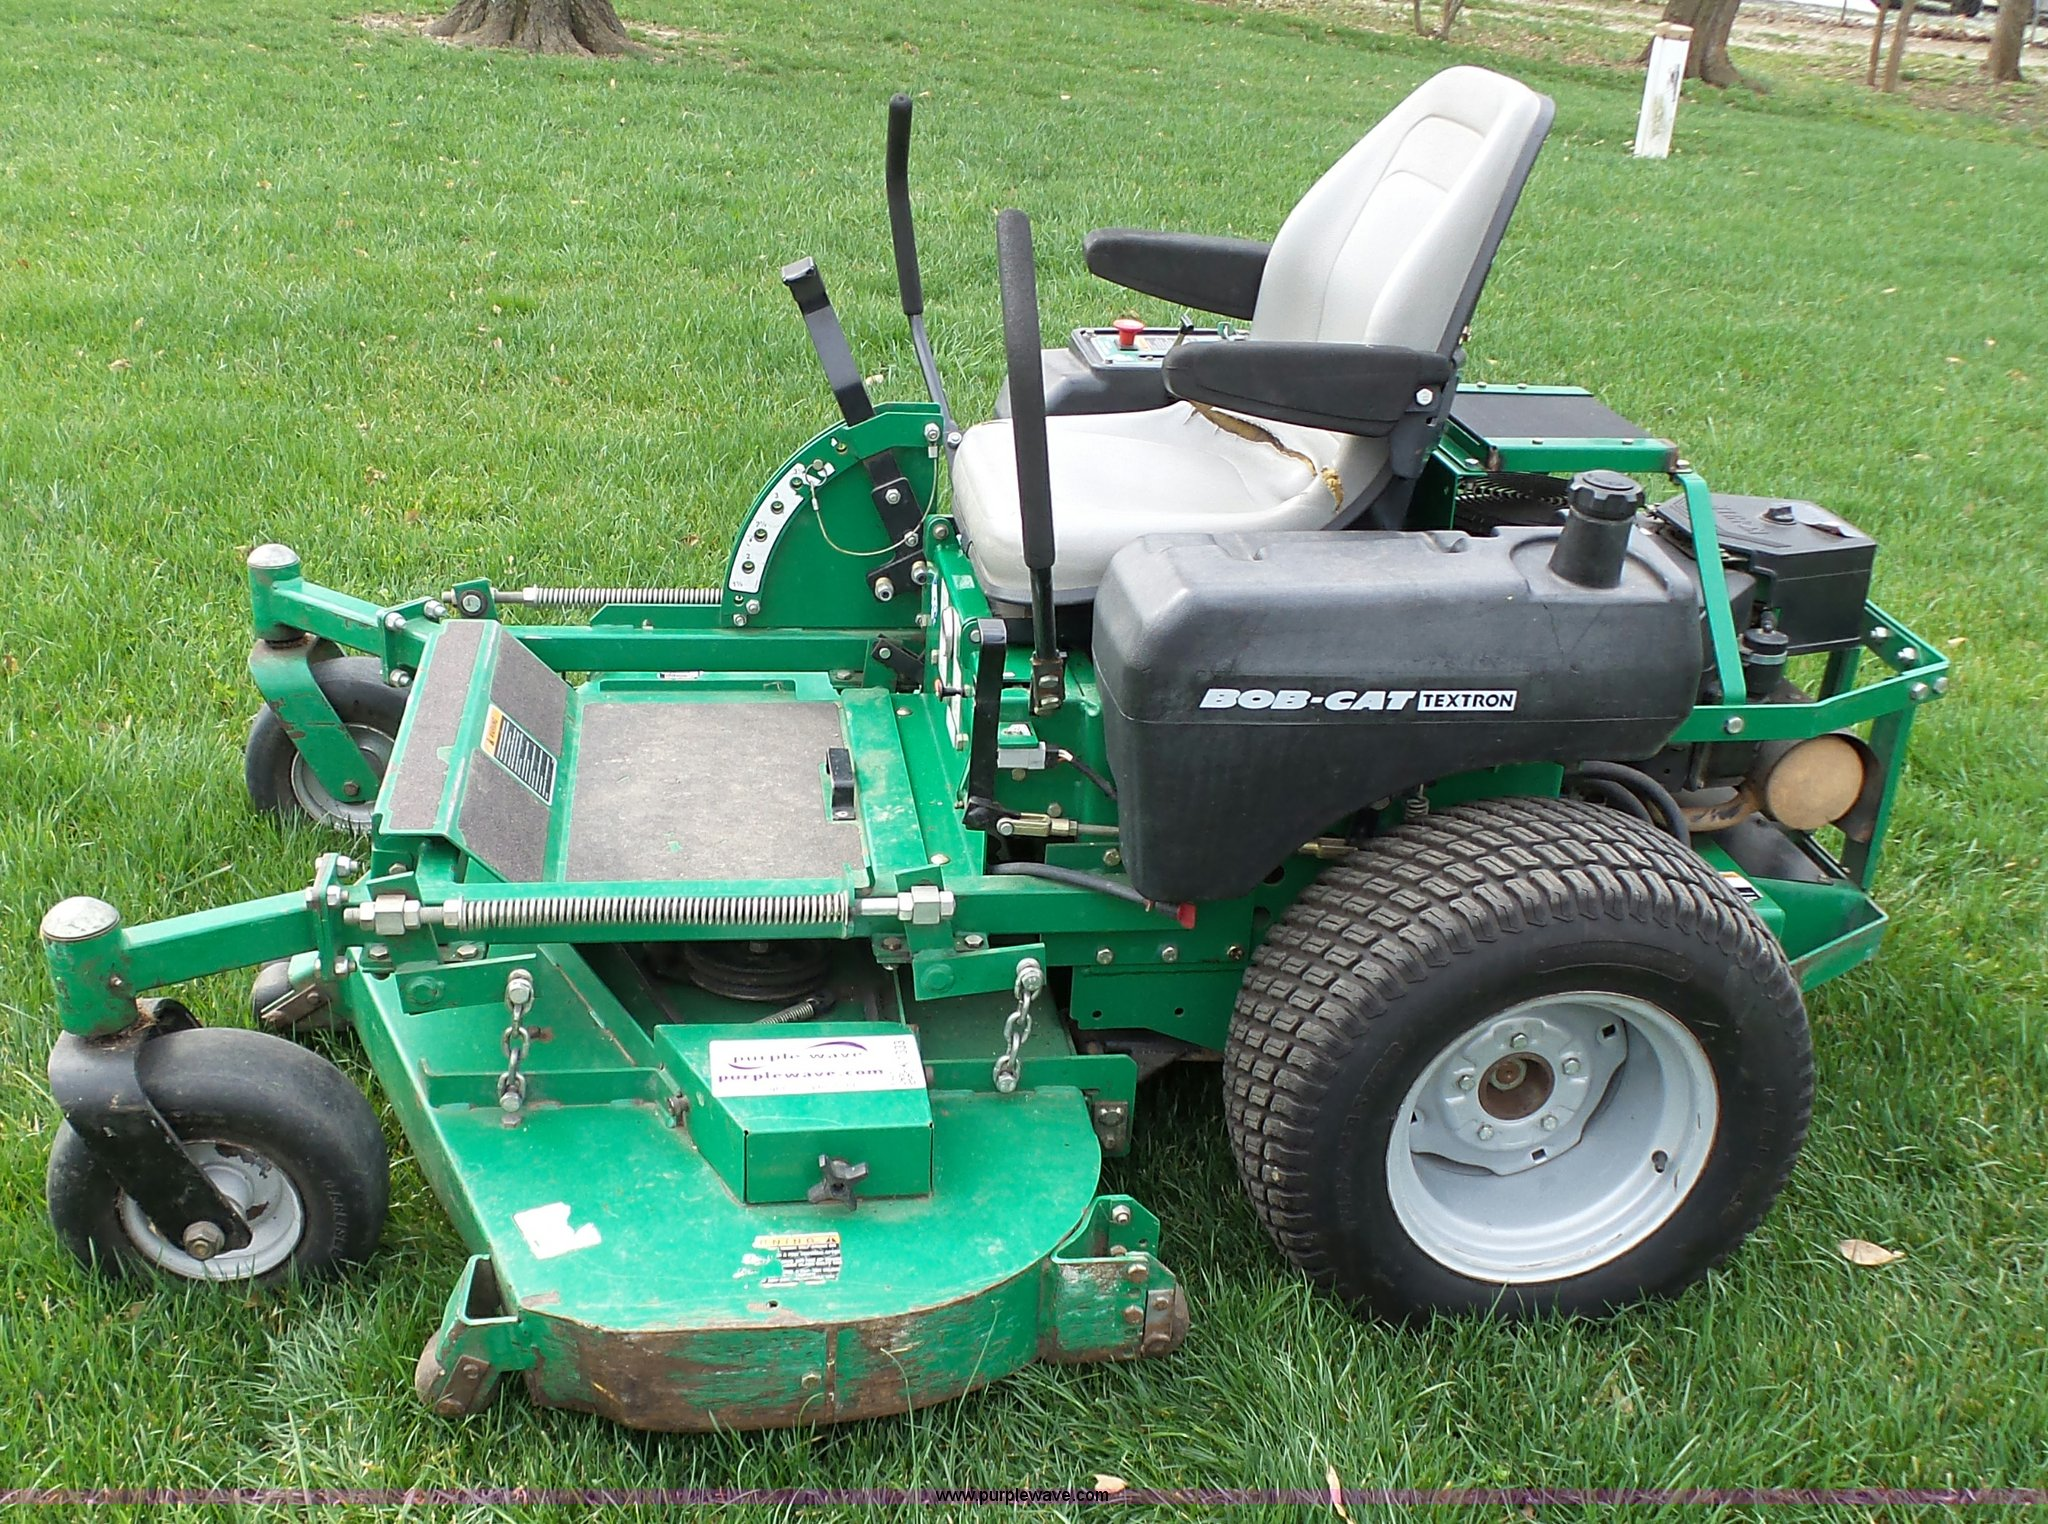 Textron Bobcat ZTR lawn mower | Item K1333 | SOLD! May 18 Ve